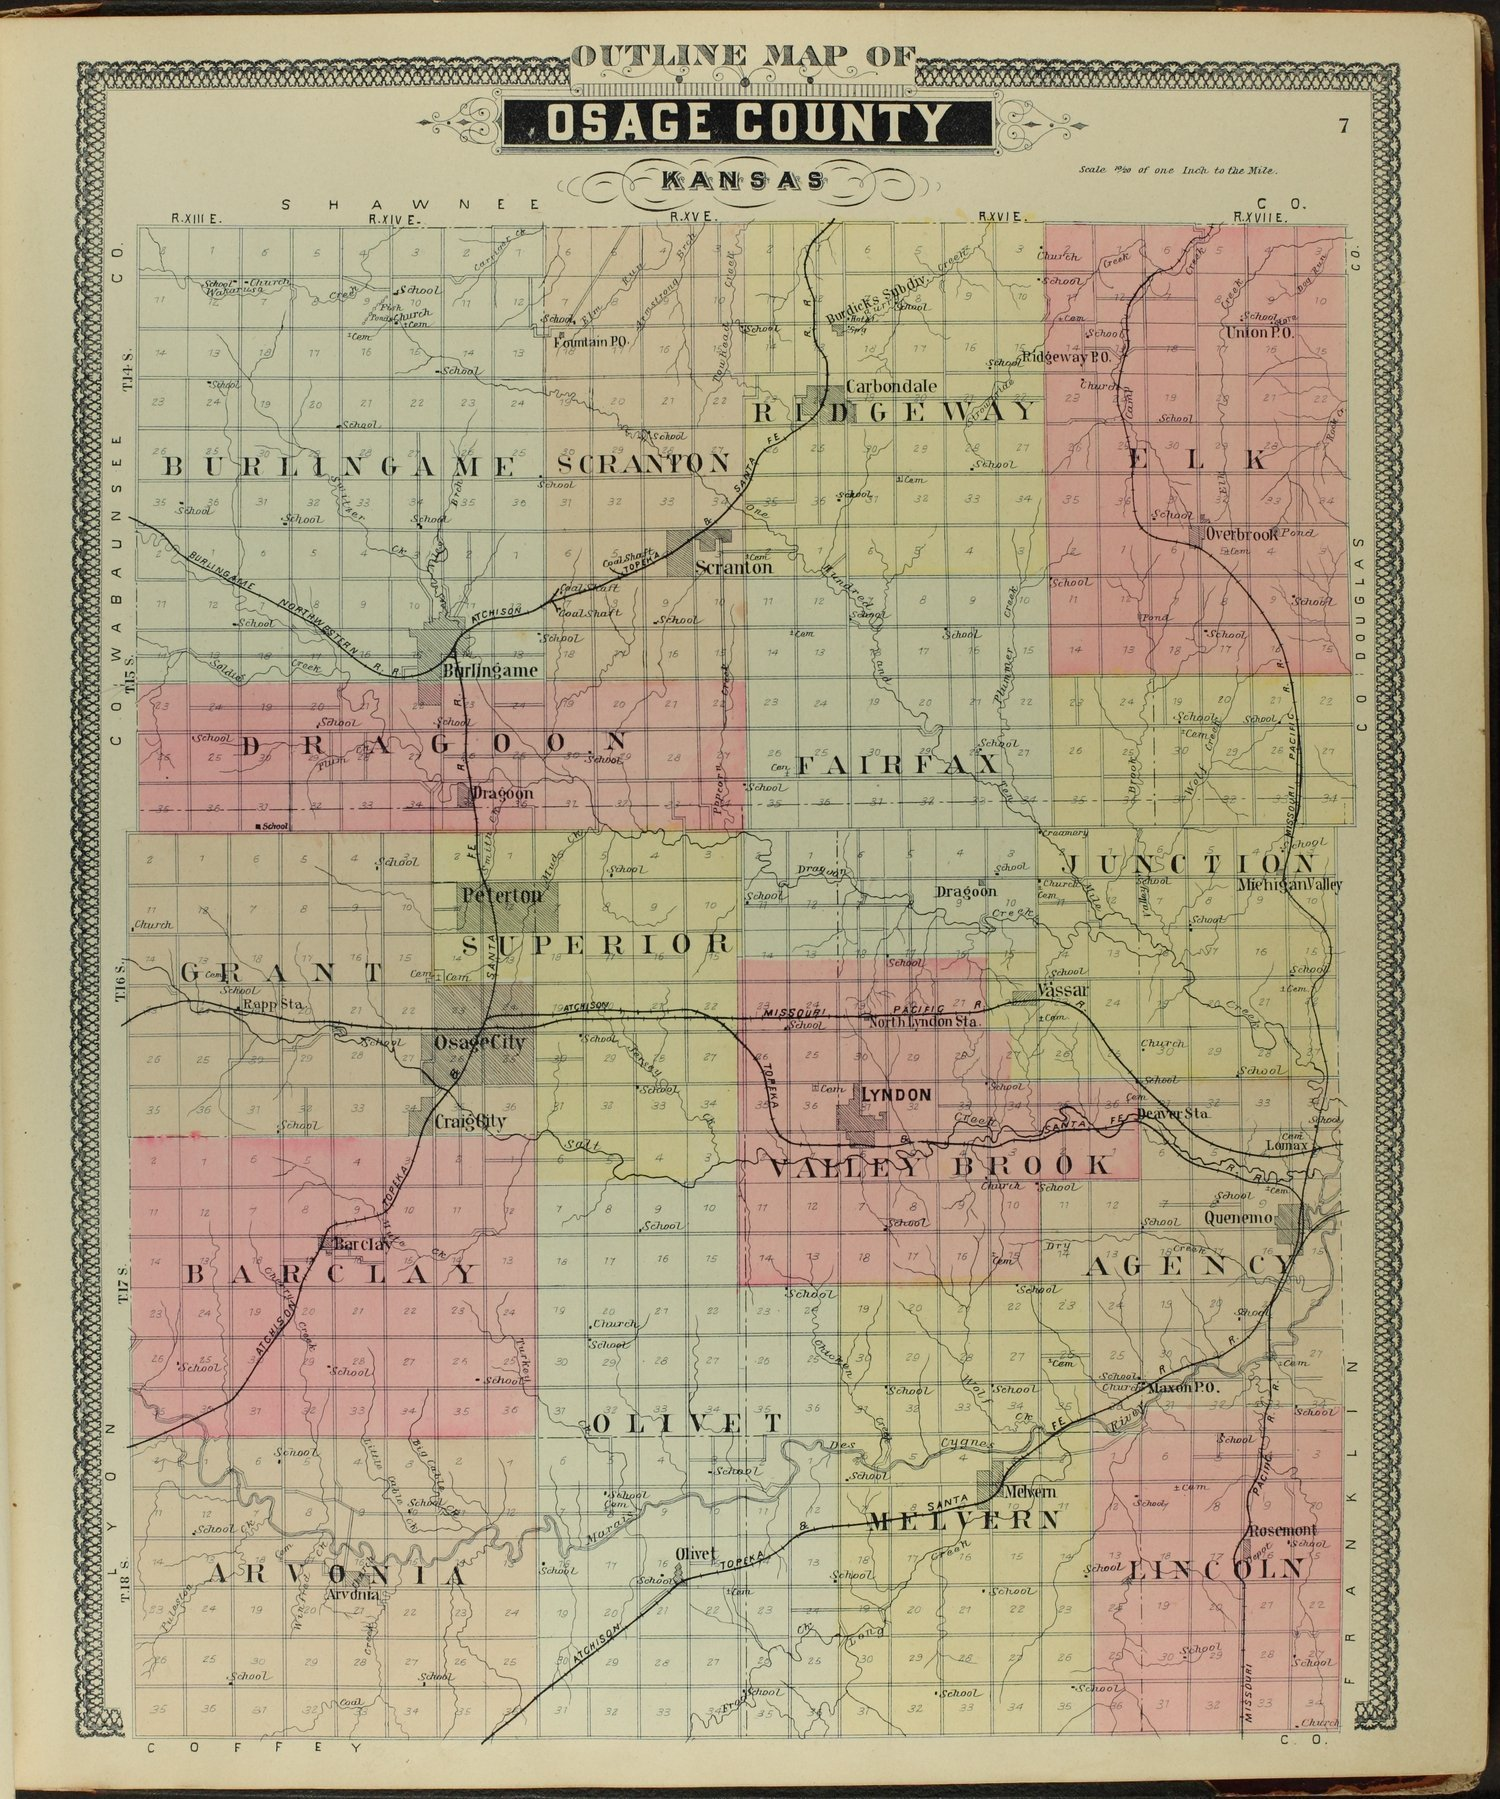 Descriptive atlas of Osage County, Kansas - 7